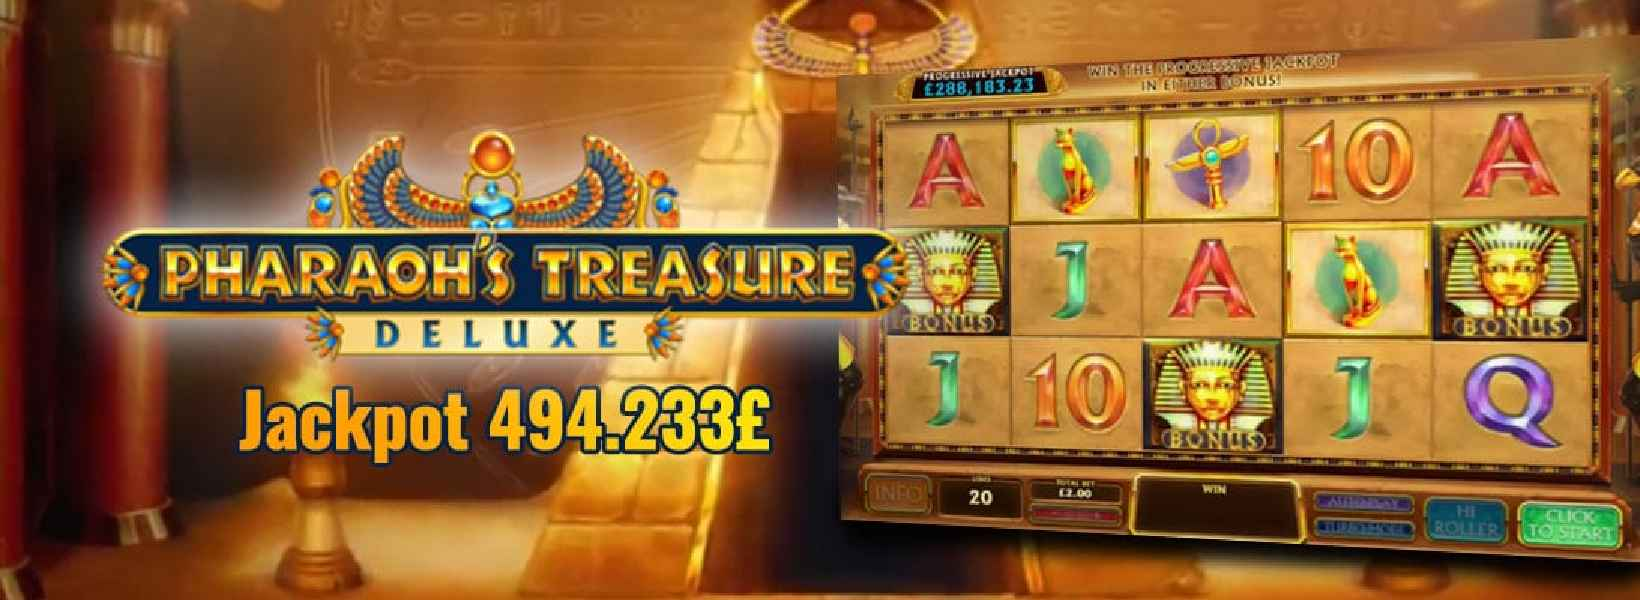 jackpot pharaos treasure deluxe